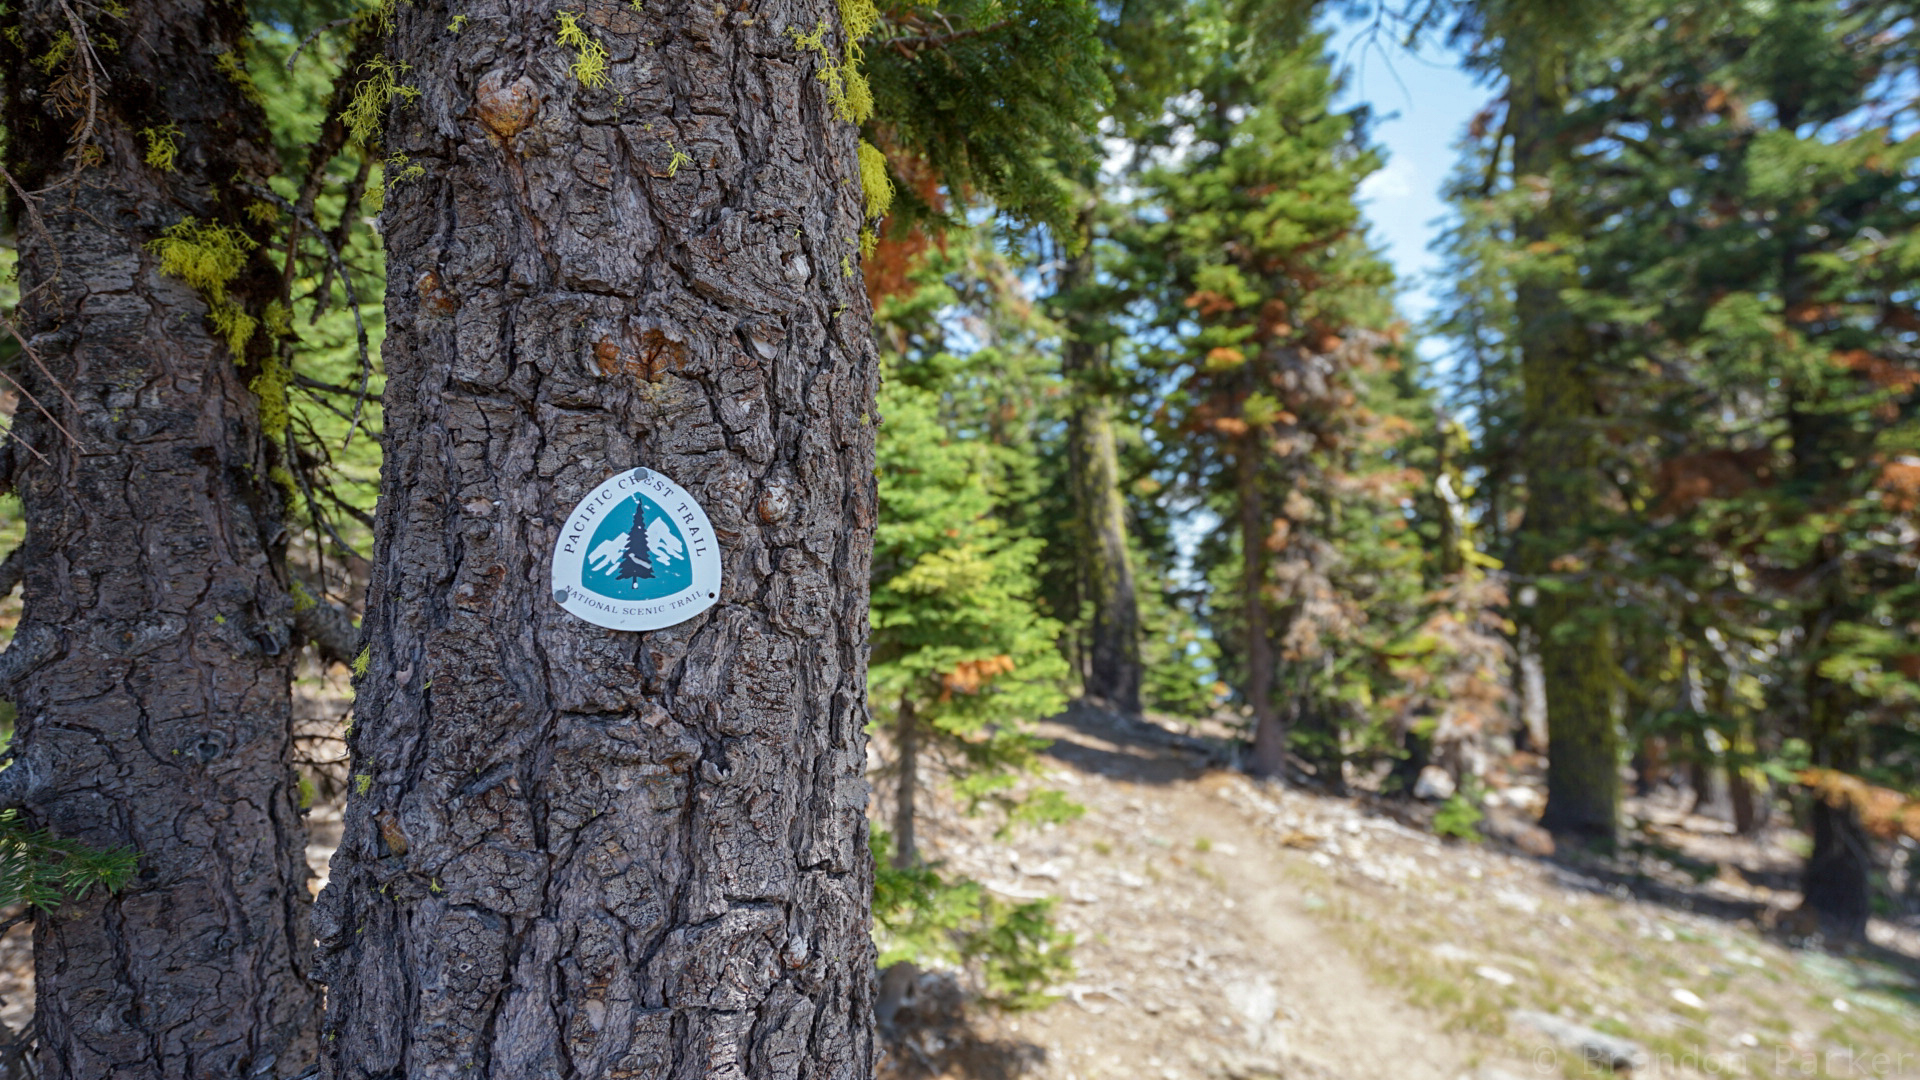 The PCT blaze that you can find on all manner of trees and posts for 2650 miles